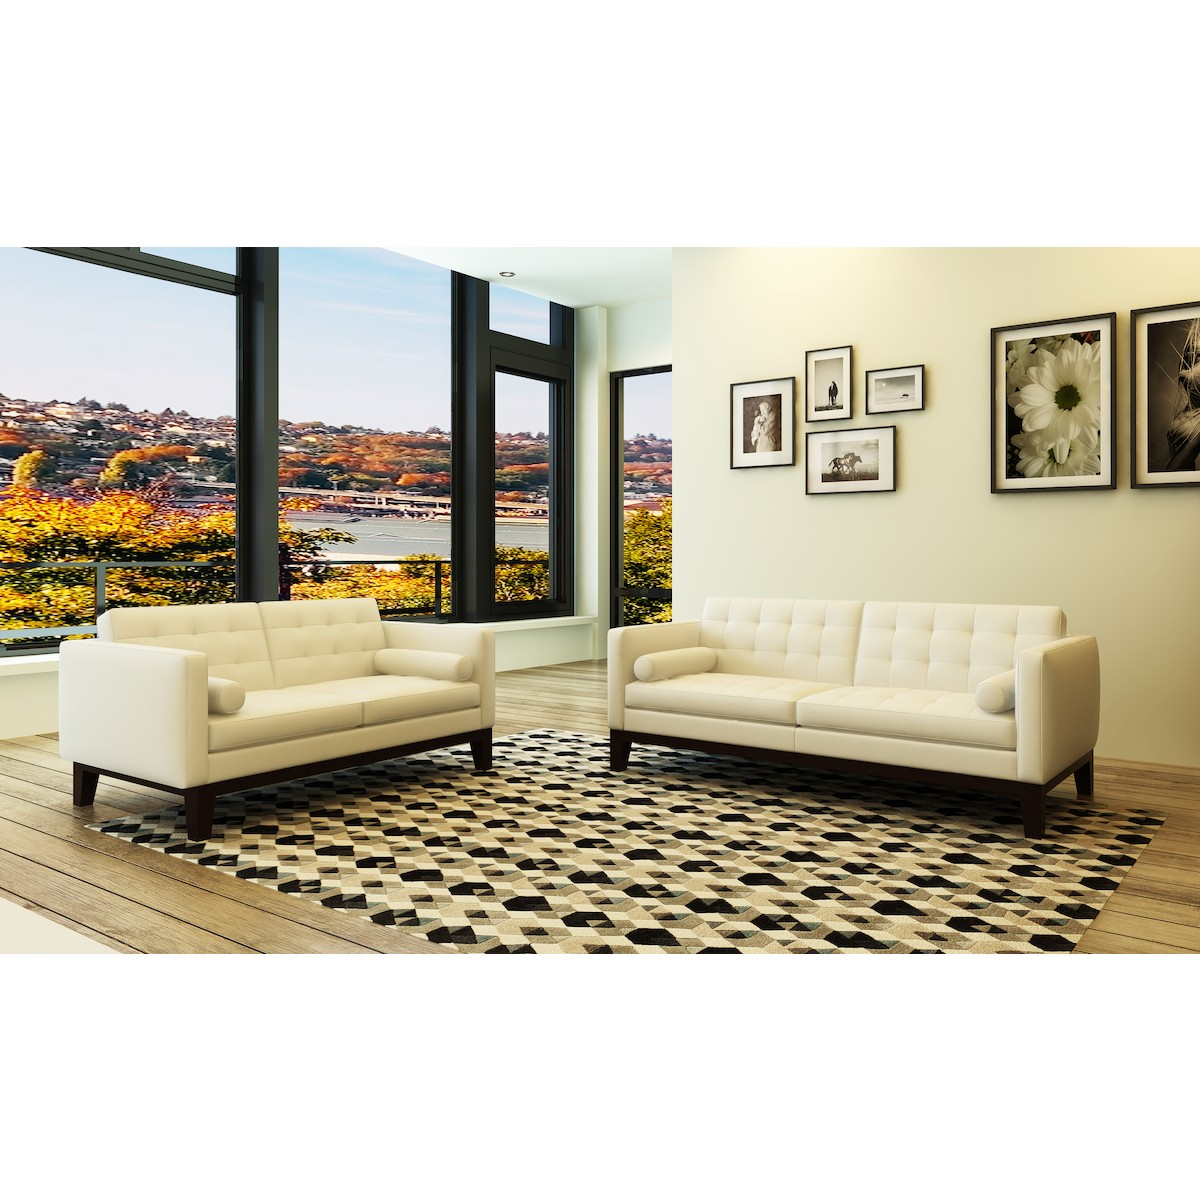 Transitional Classic Style 3 Piece Living Room Set Full Italian Genuine Leather within 11 Clever Ideas How to Makeover Full Living Room Sets